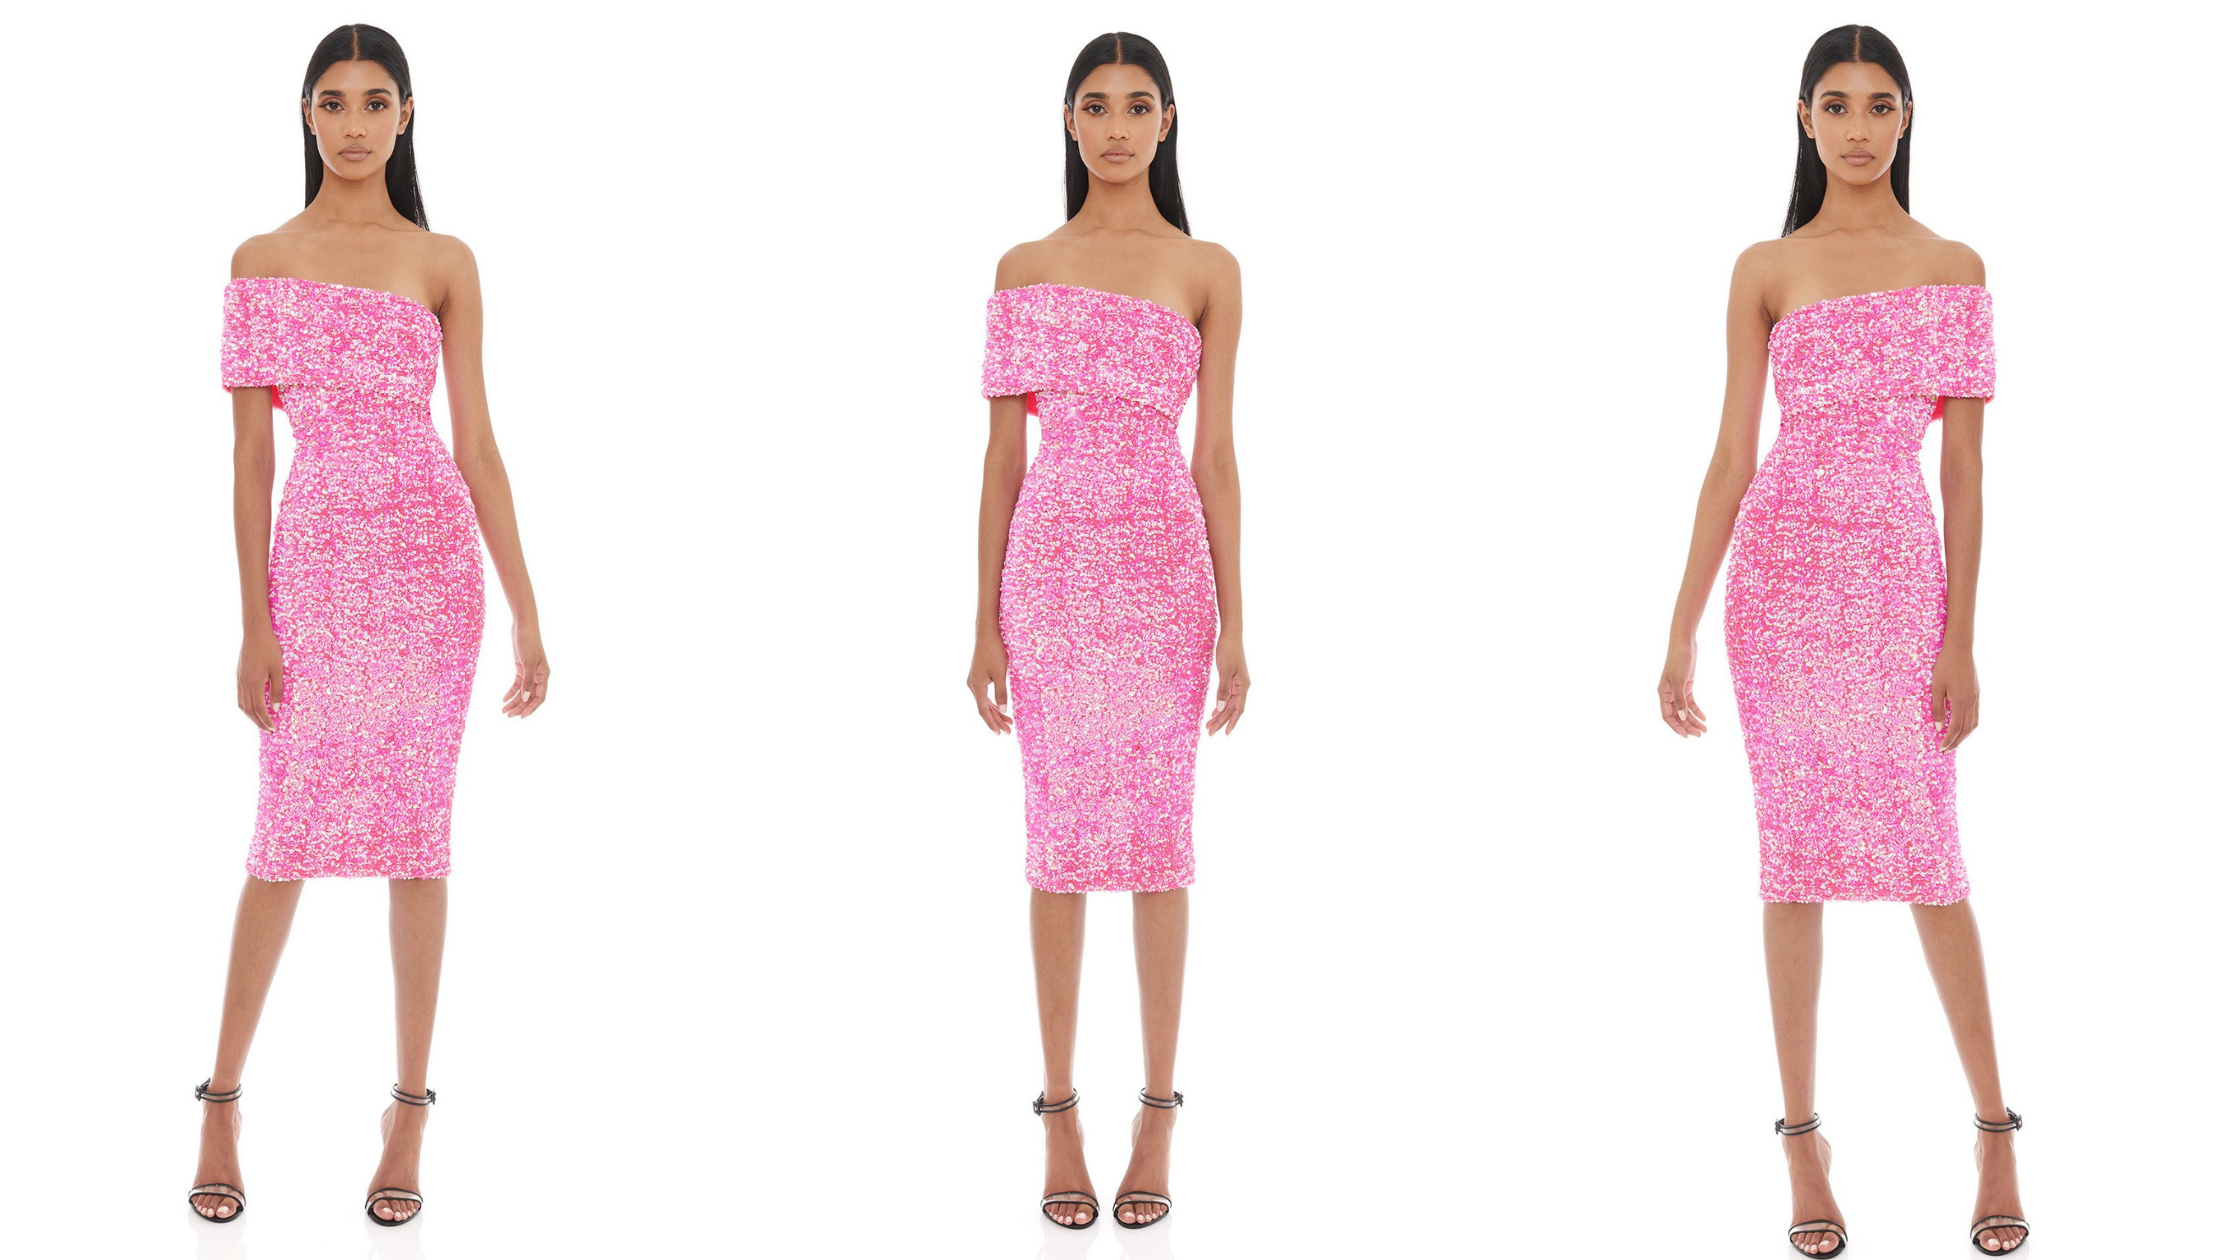 https://zetoni.com.au/collections/must-have-sparkly-and-sexy-outfits/products/alyssa-dress-pink